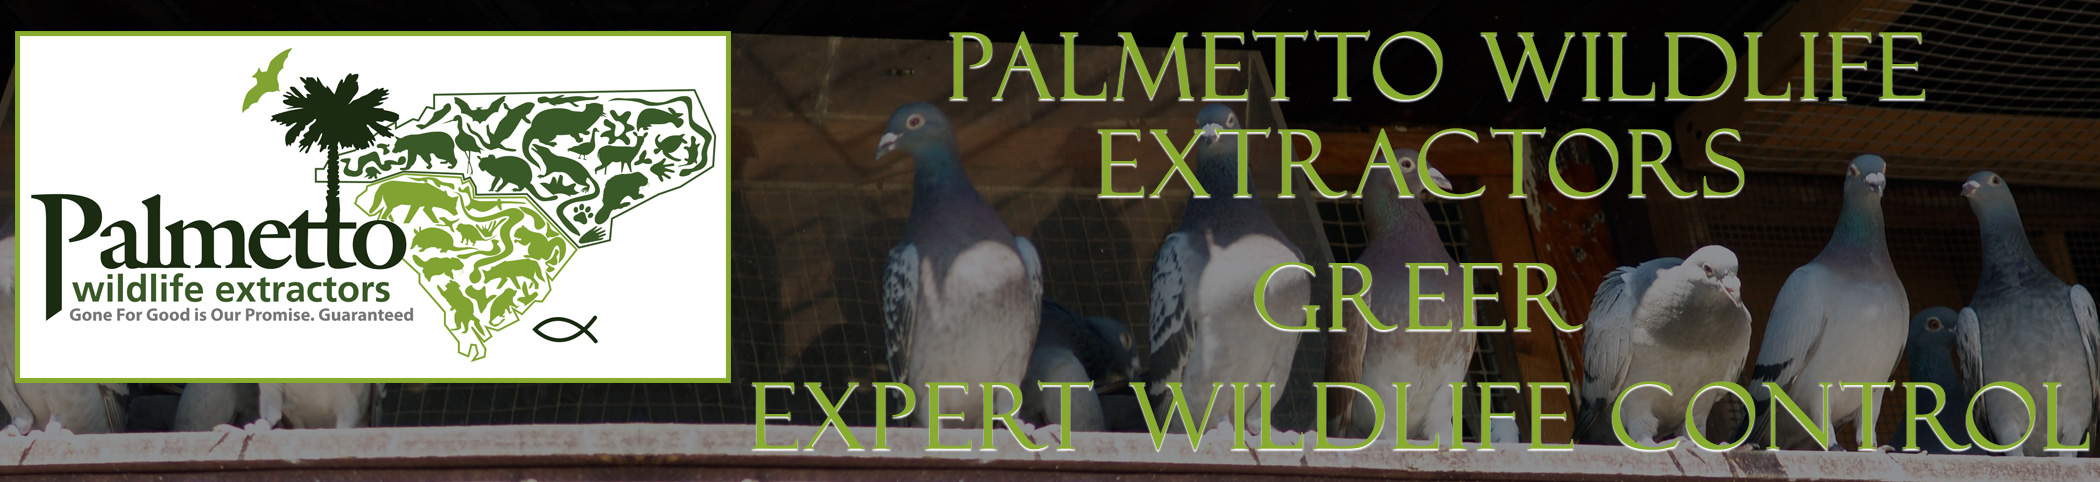 Palmetto Wildlife Extractors Greer south carolina header image